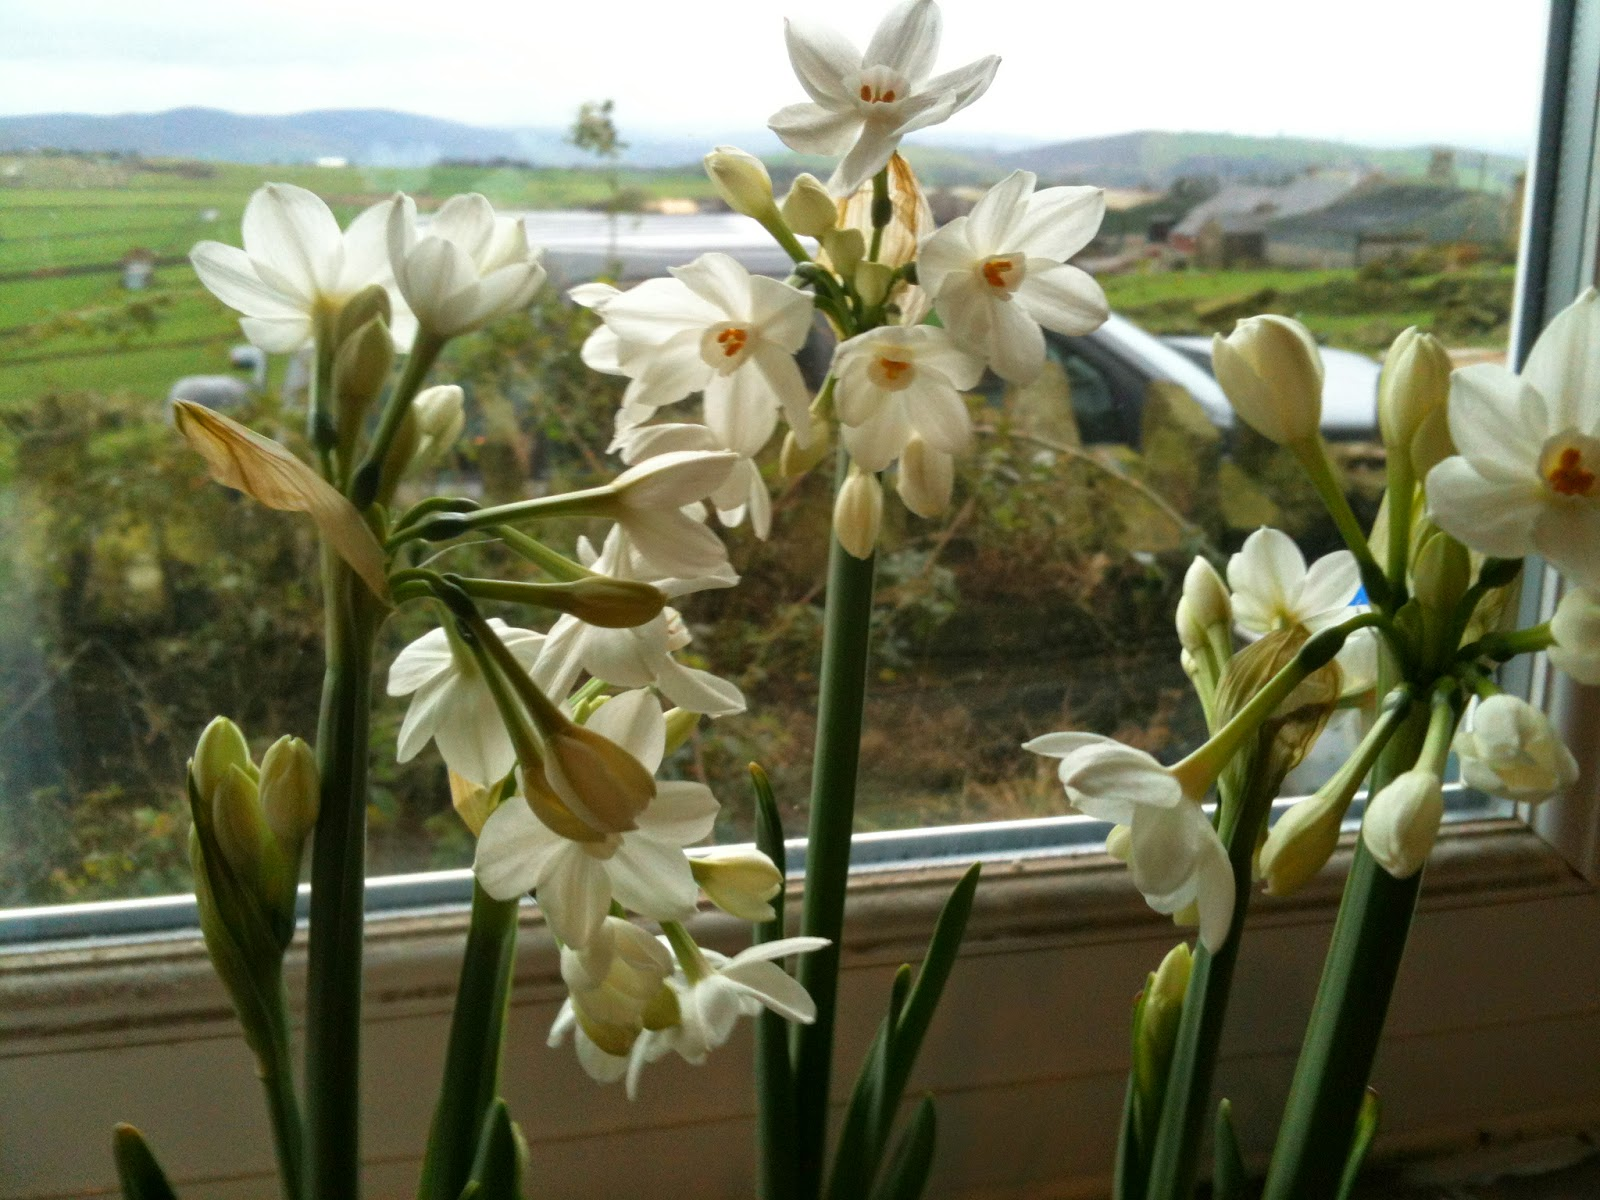 Paper Whites on the windowsill #lifeonpigrow